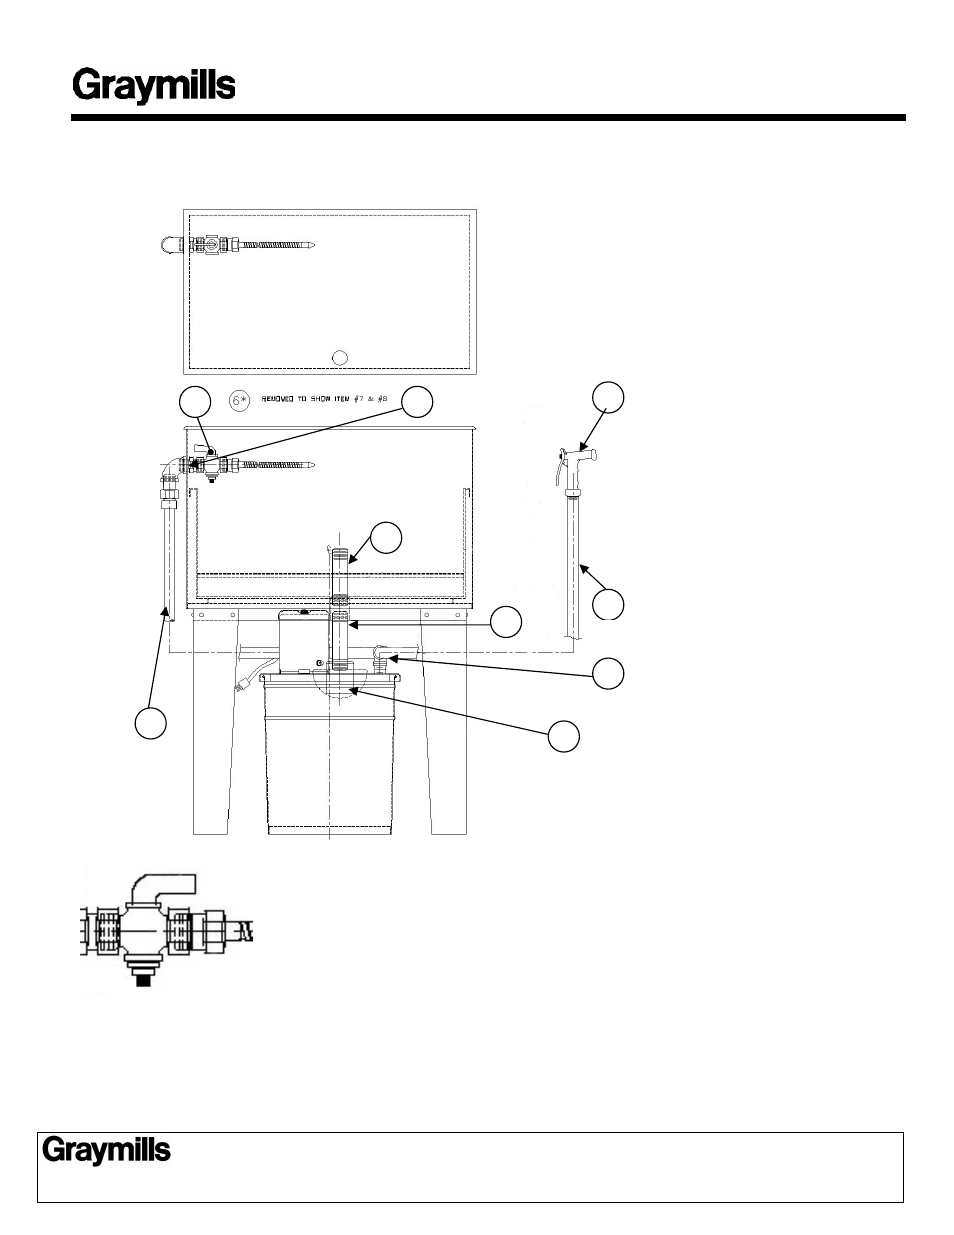 Graymills FLO-BAC Assymbly User Manual | 2 pages